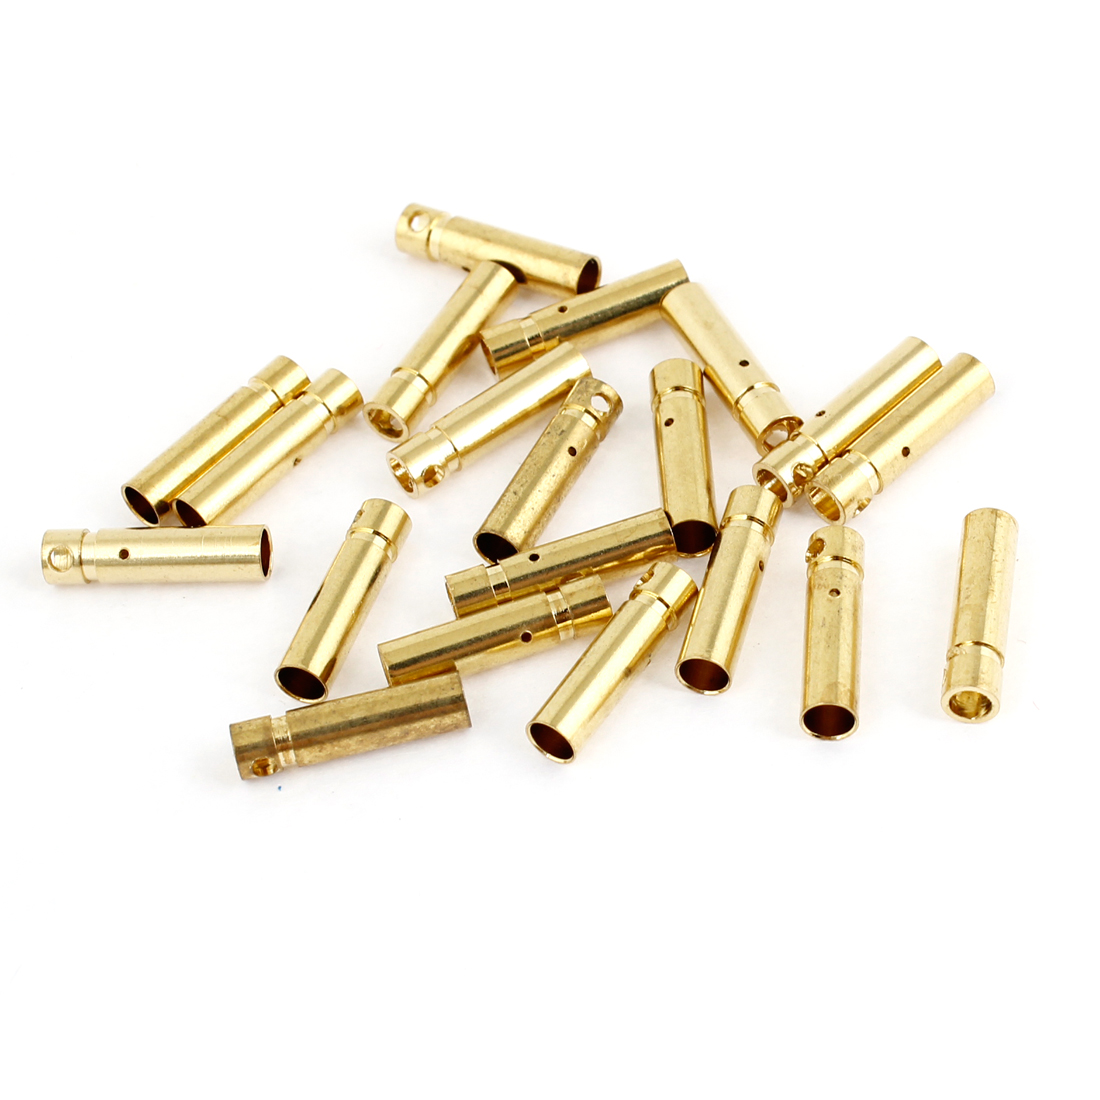 20PCS Gold Tone Metal RC Banana Connector Female 3mm Diameter